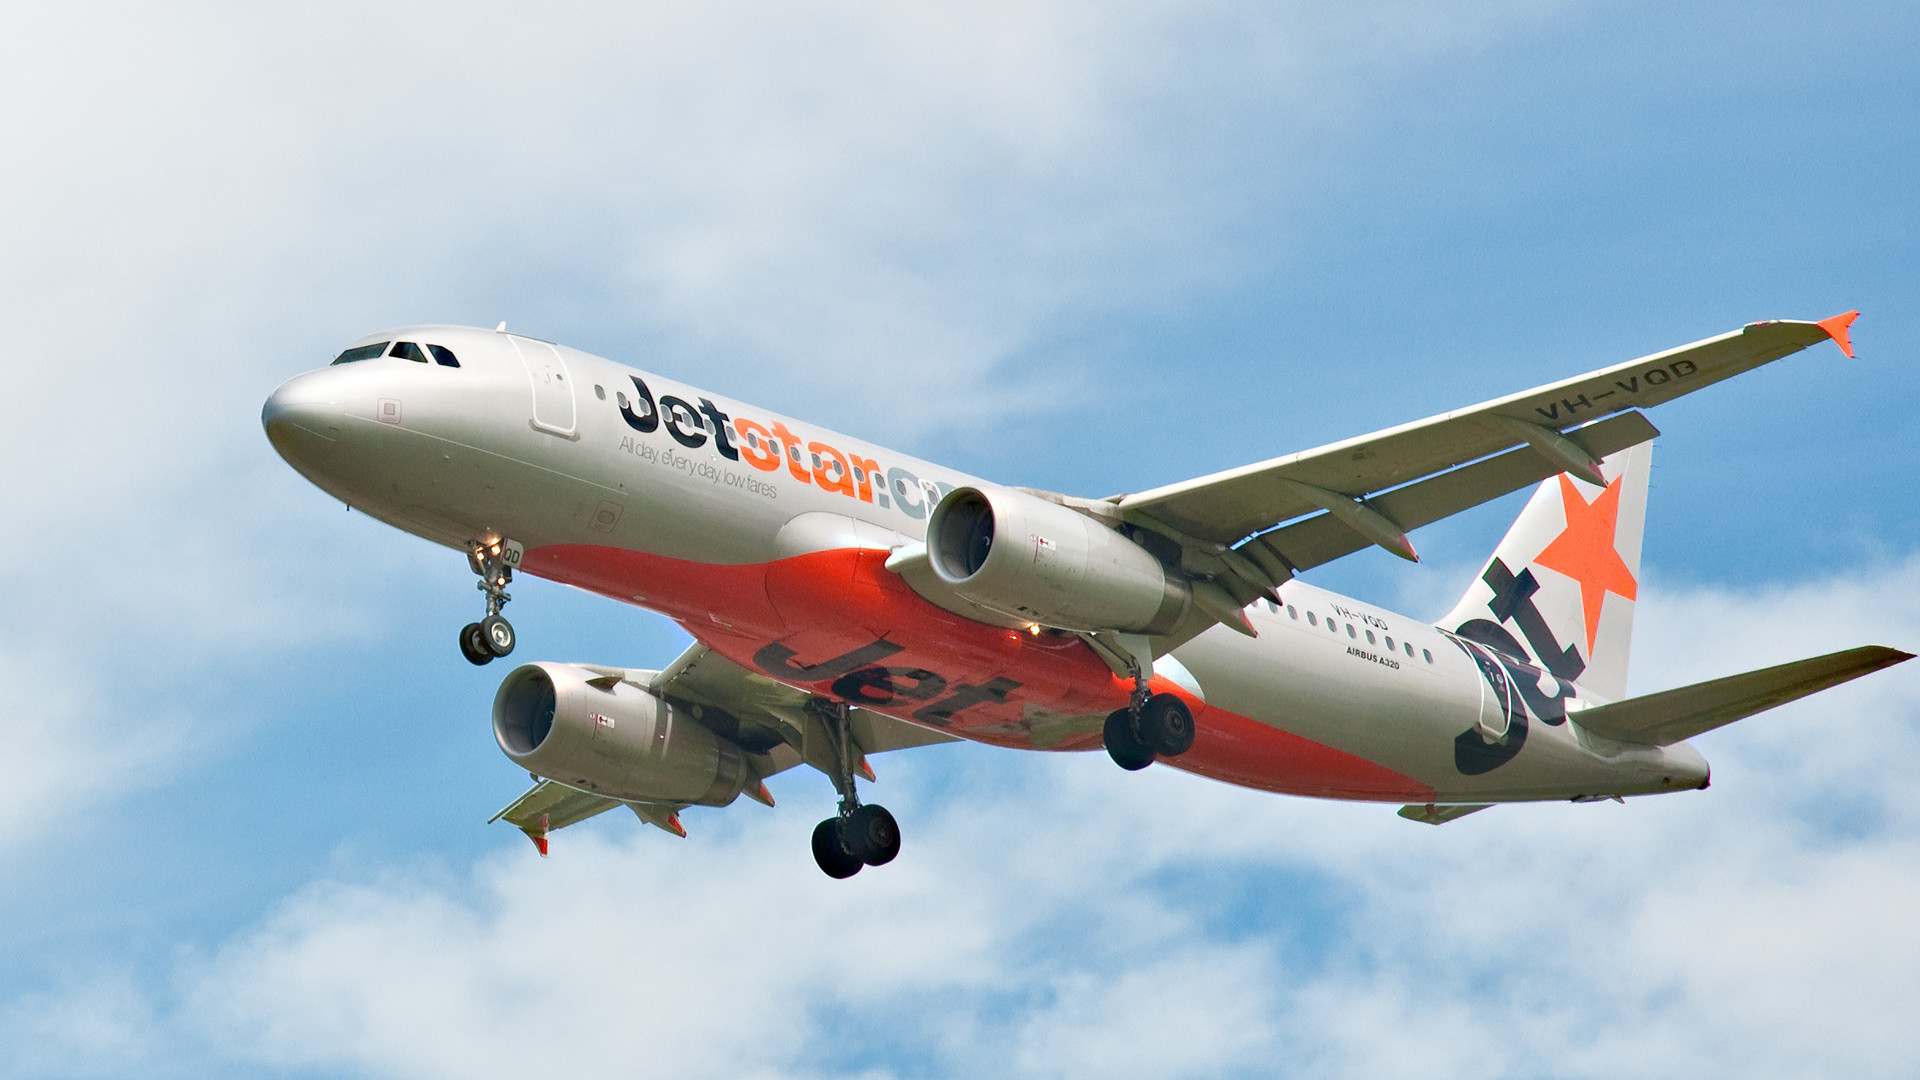 Airbus A320 Aircrafts Jetstar Sydney Airport Aircraft Airplane Full HD Impressive Wallpaper